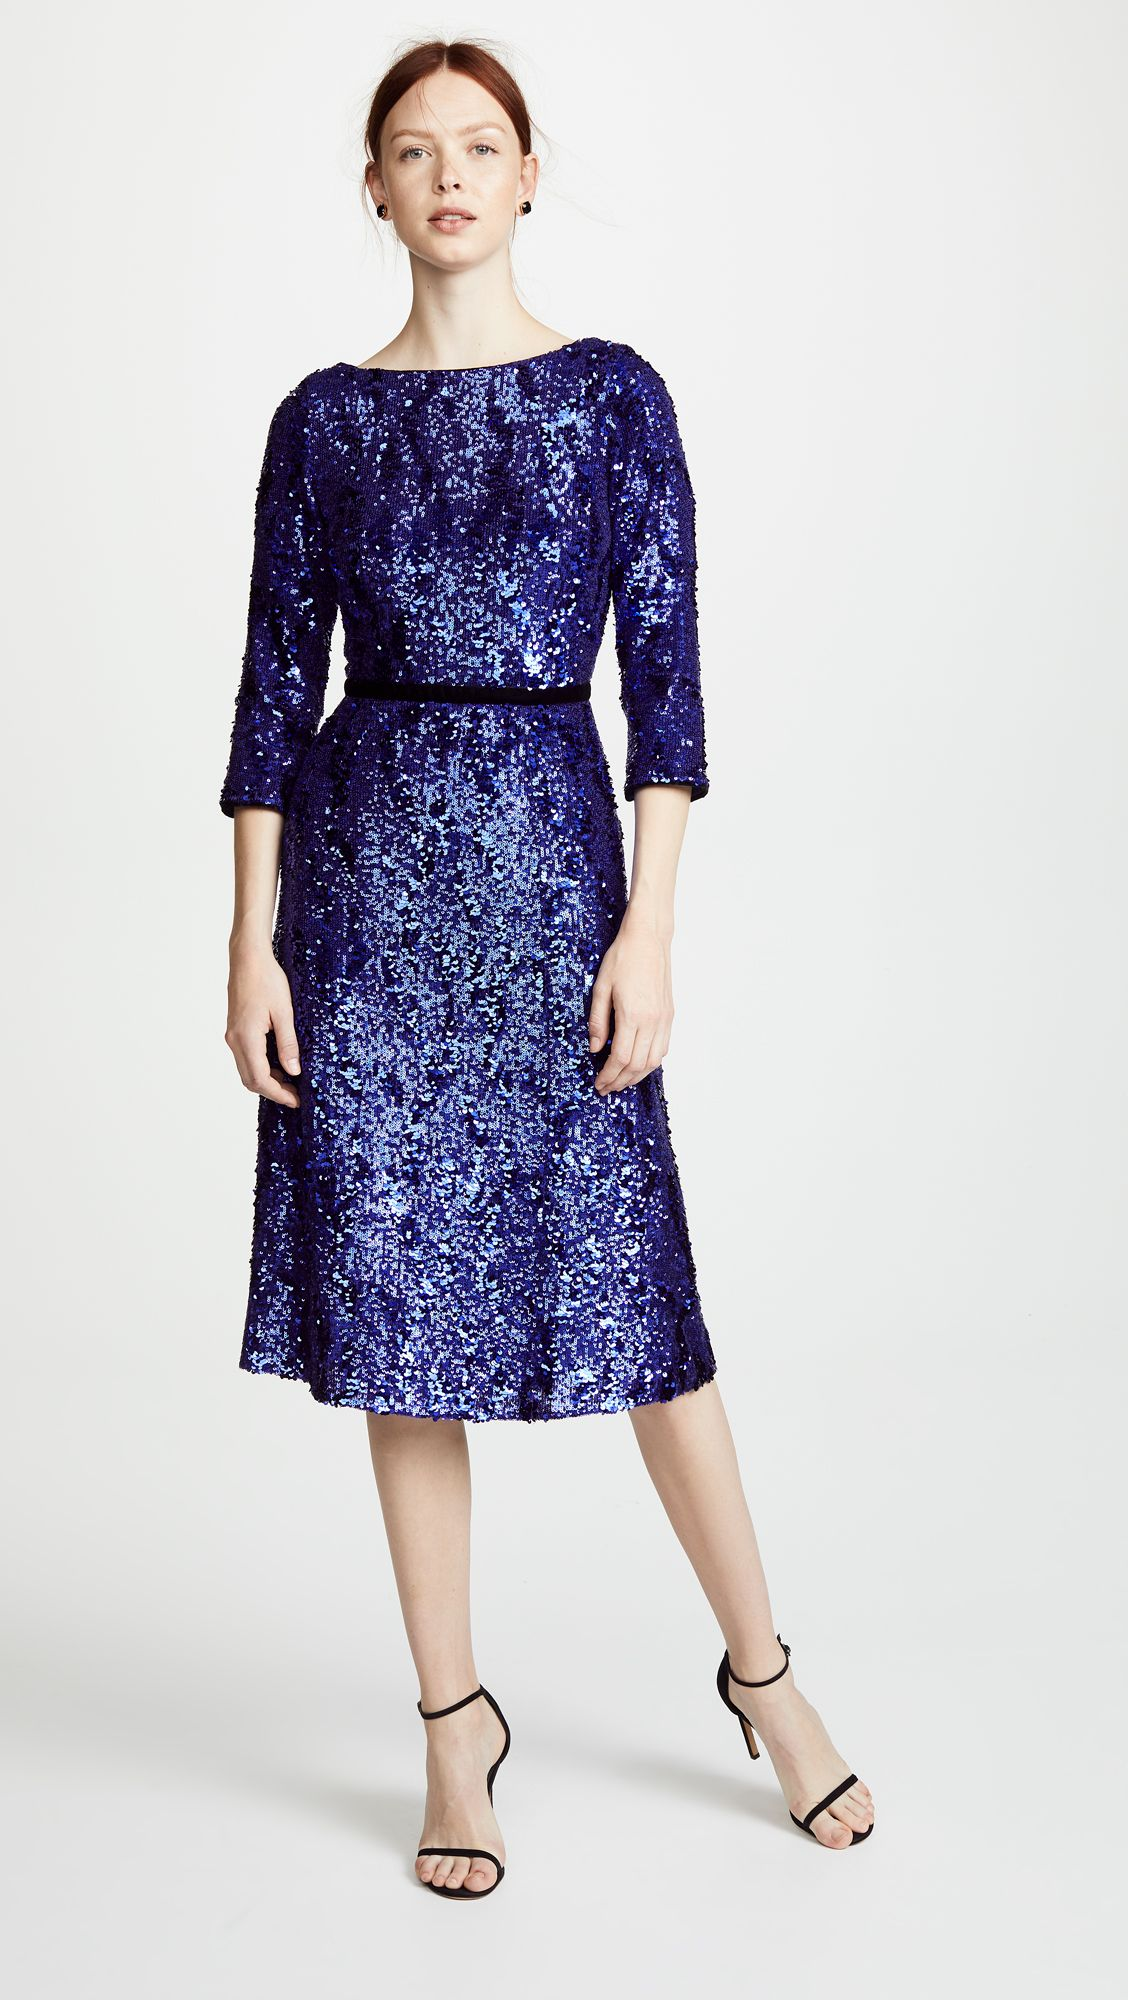 3bc14eda6a8d Marchesa Notte Sequin Dress | SHOPBOP mother of the bride mother of the  groom 3/4 sleeve midi purple blue navy sequin dress